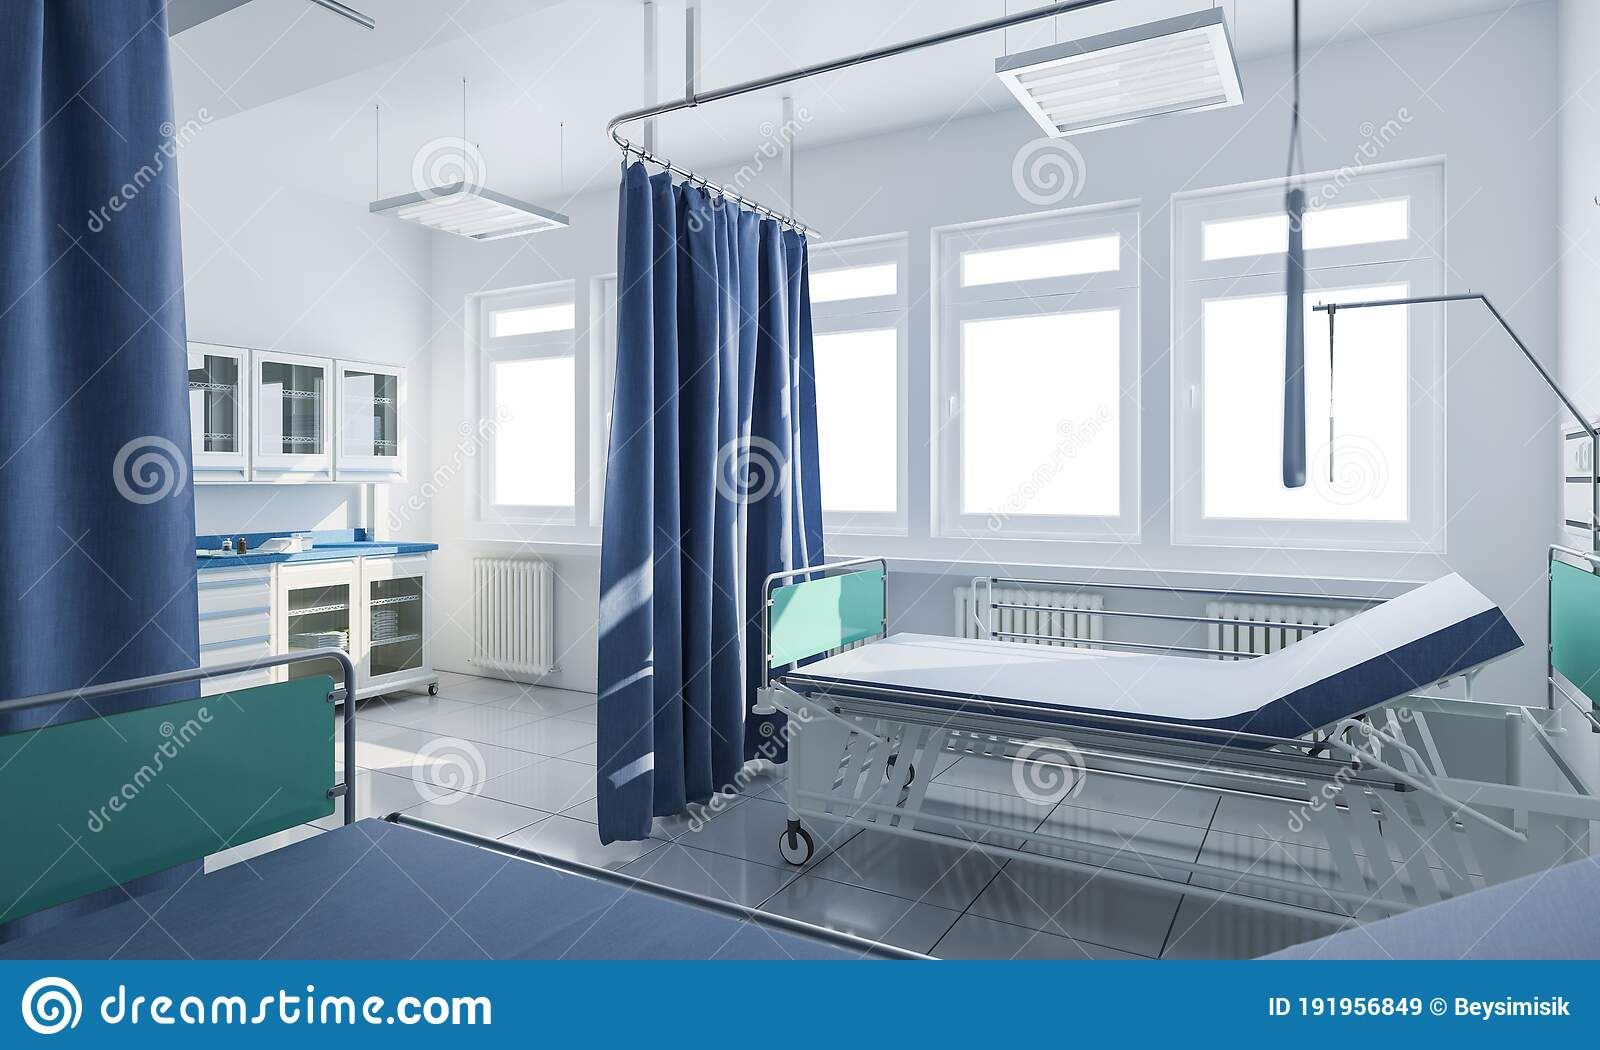 wheeled bed behind privacy curtains in a medical clinic stock illustration illustration of heater healthcare 191956849